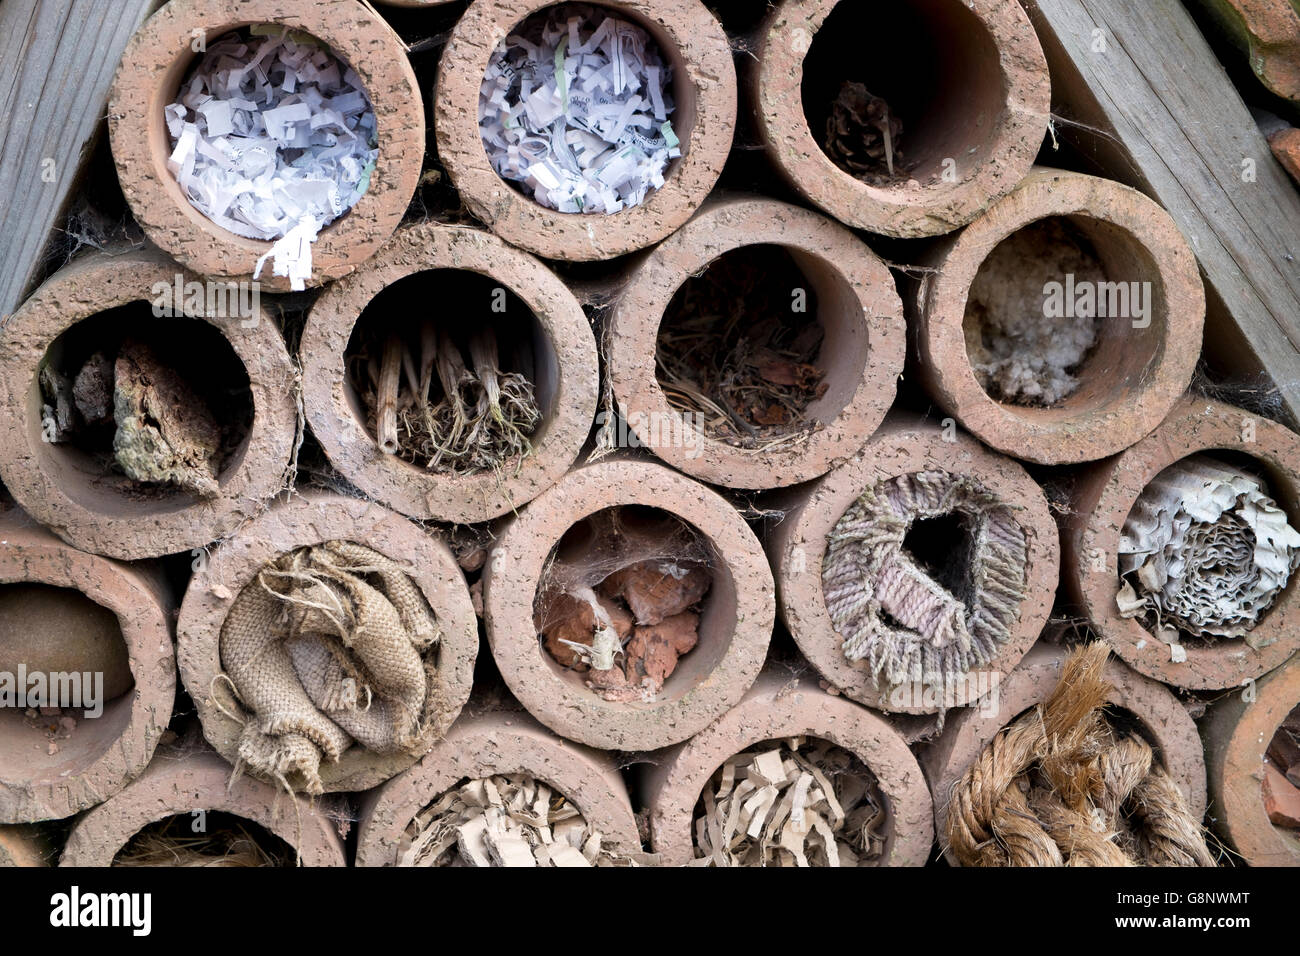 Insect hotel offering nest places in clay pipes - Stock Image